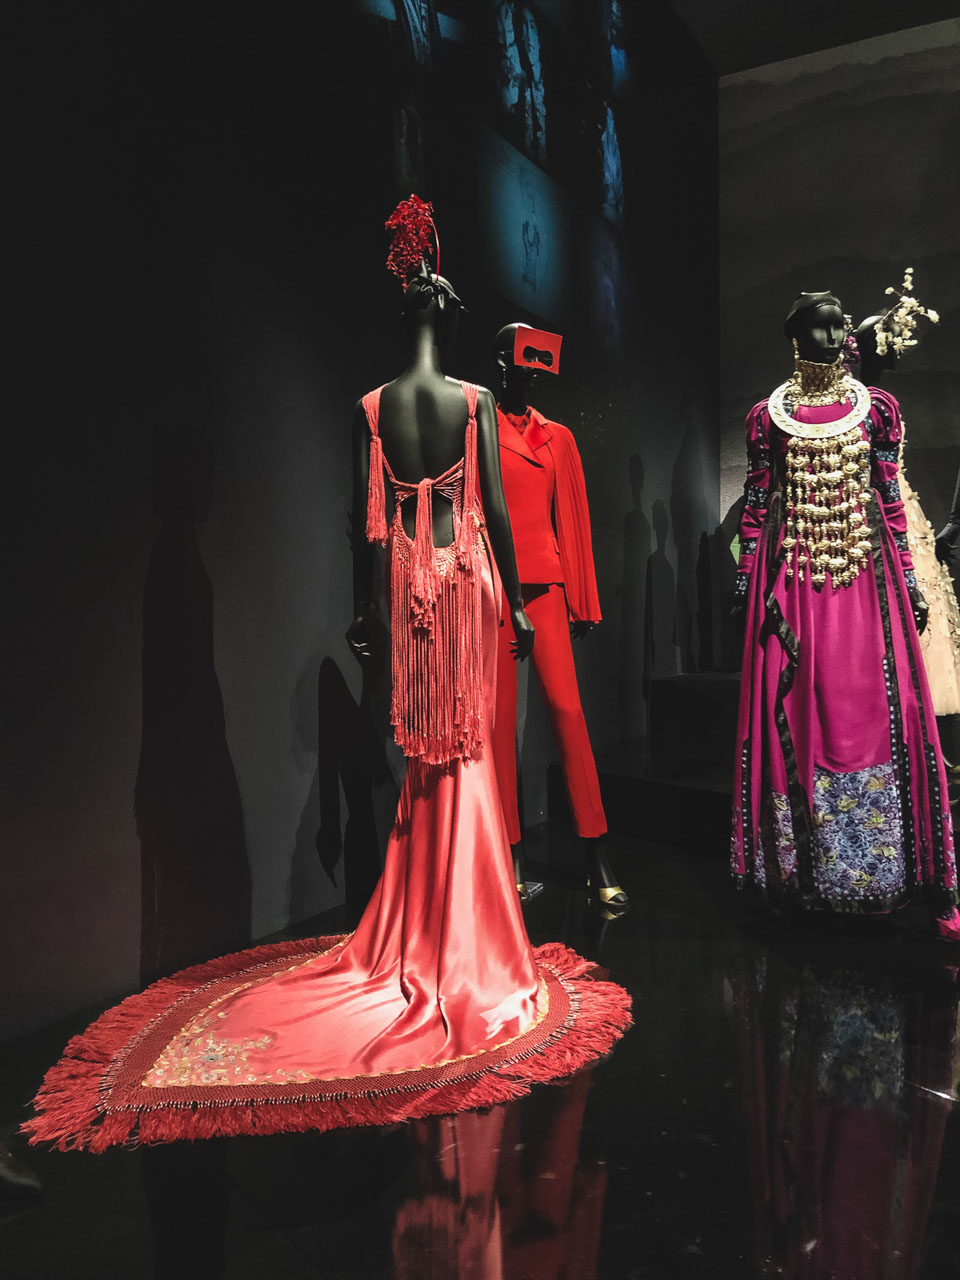 Travel-inspired designs of John Galliano for Dior at the Victoria and Albert Museum in London